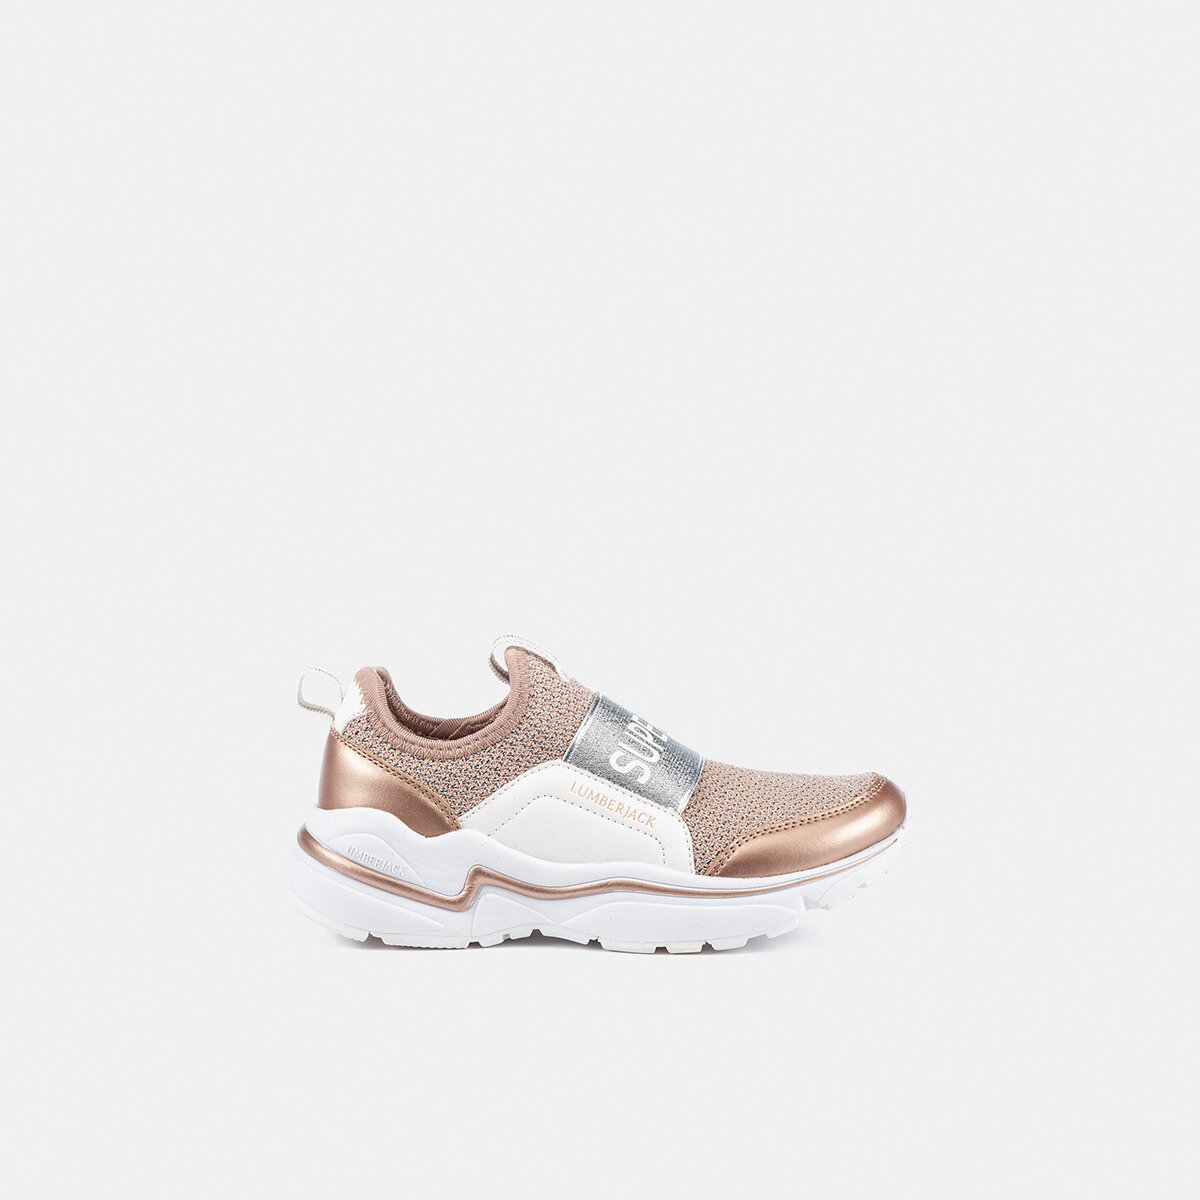 DREW ANTIQUE PINK/SILVER Girl Sneakers